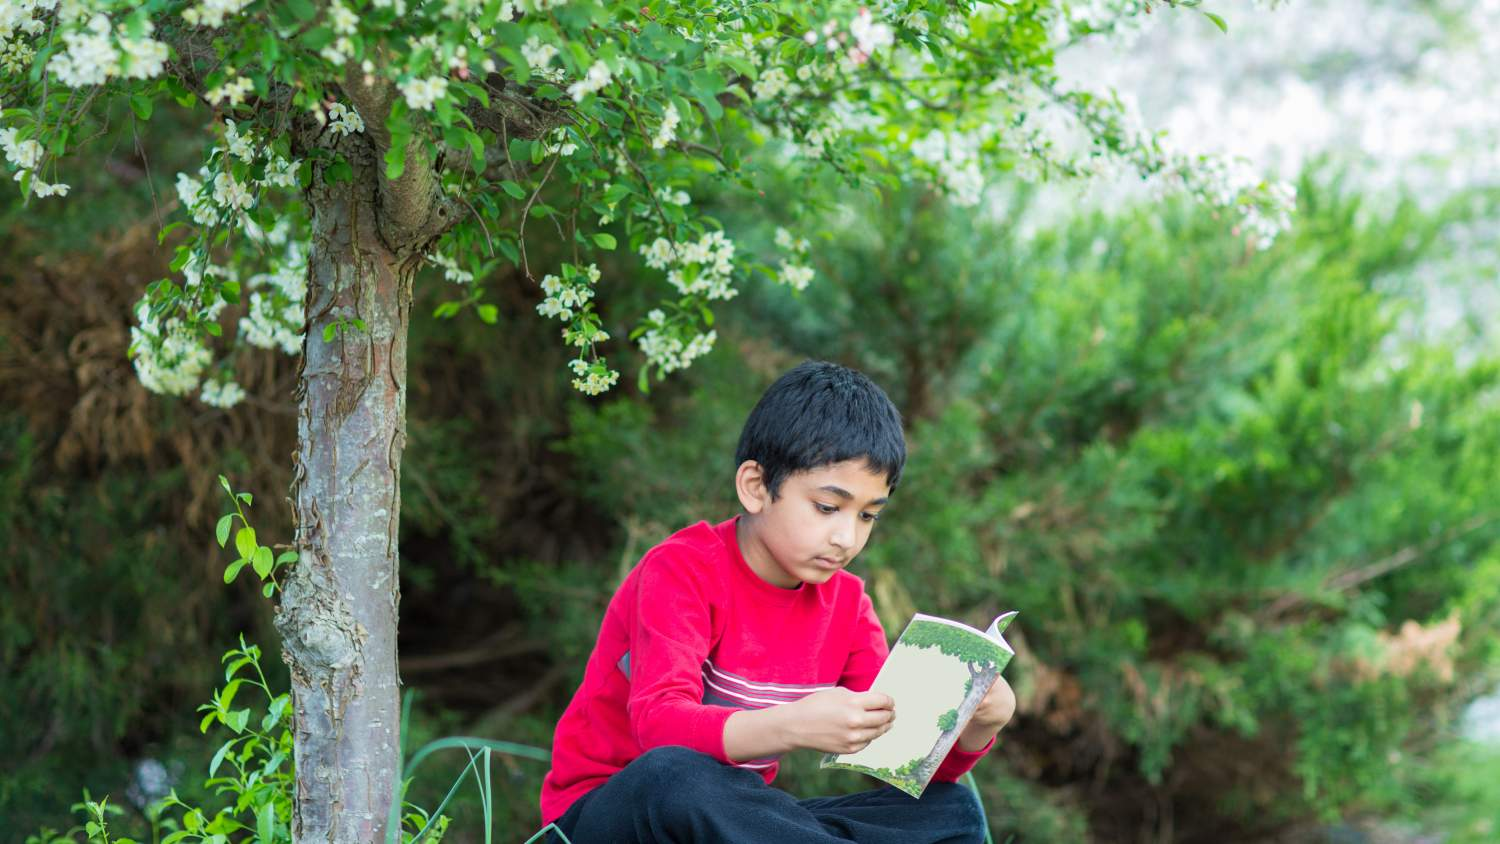 Kid reading by tree